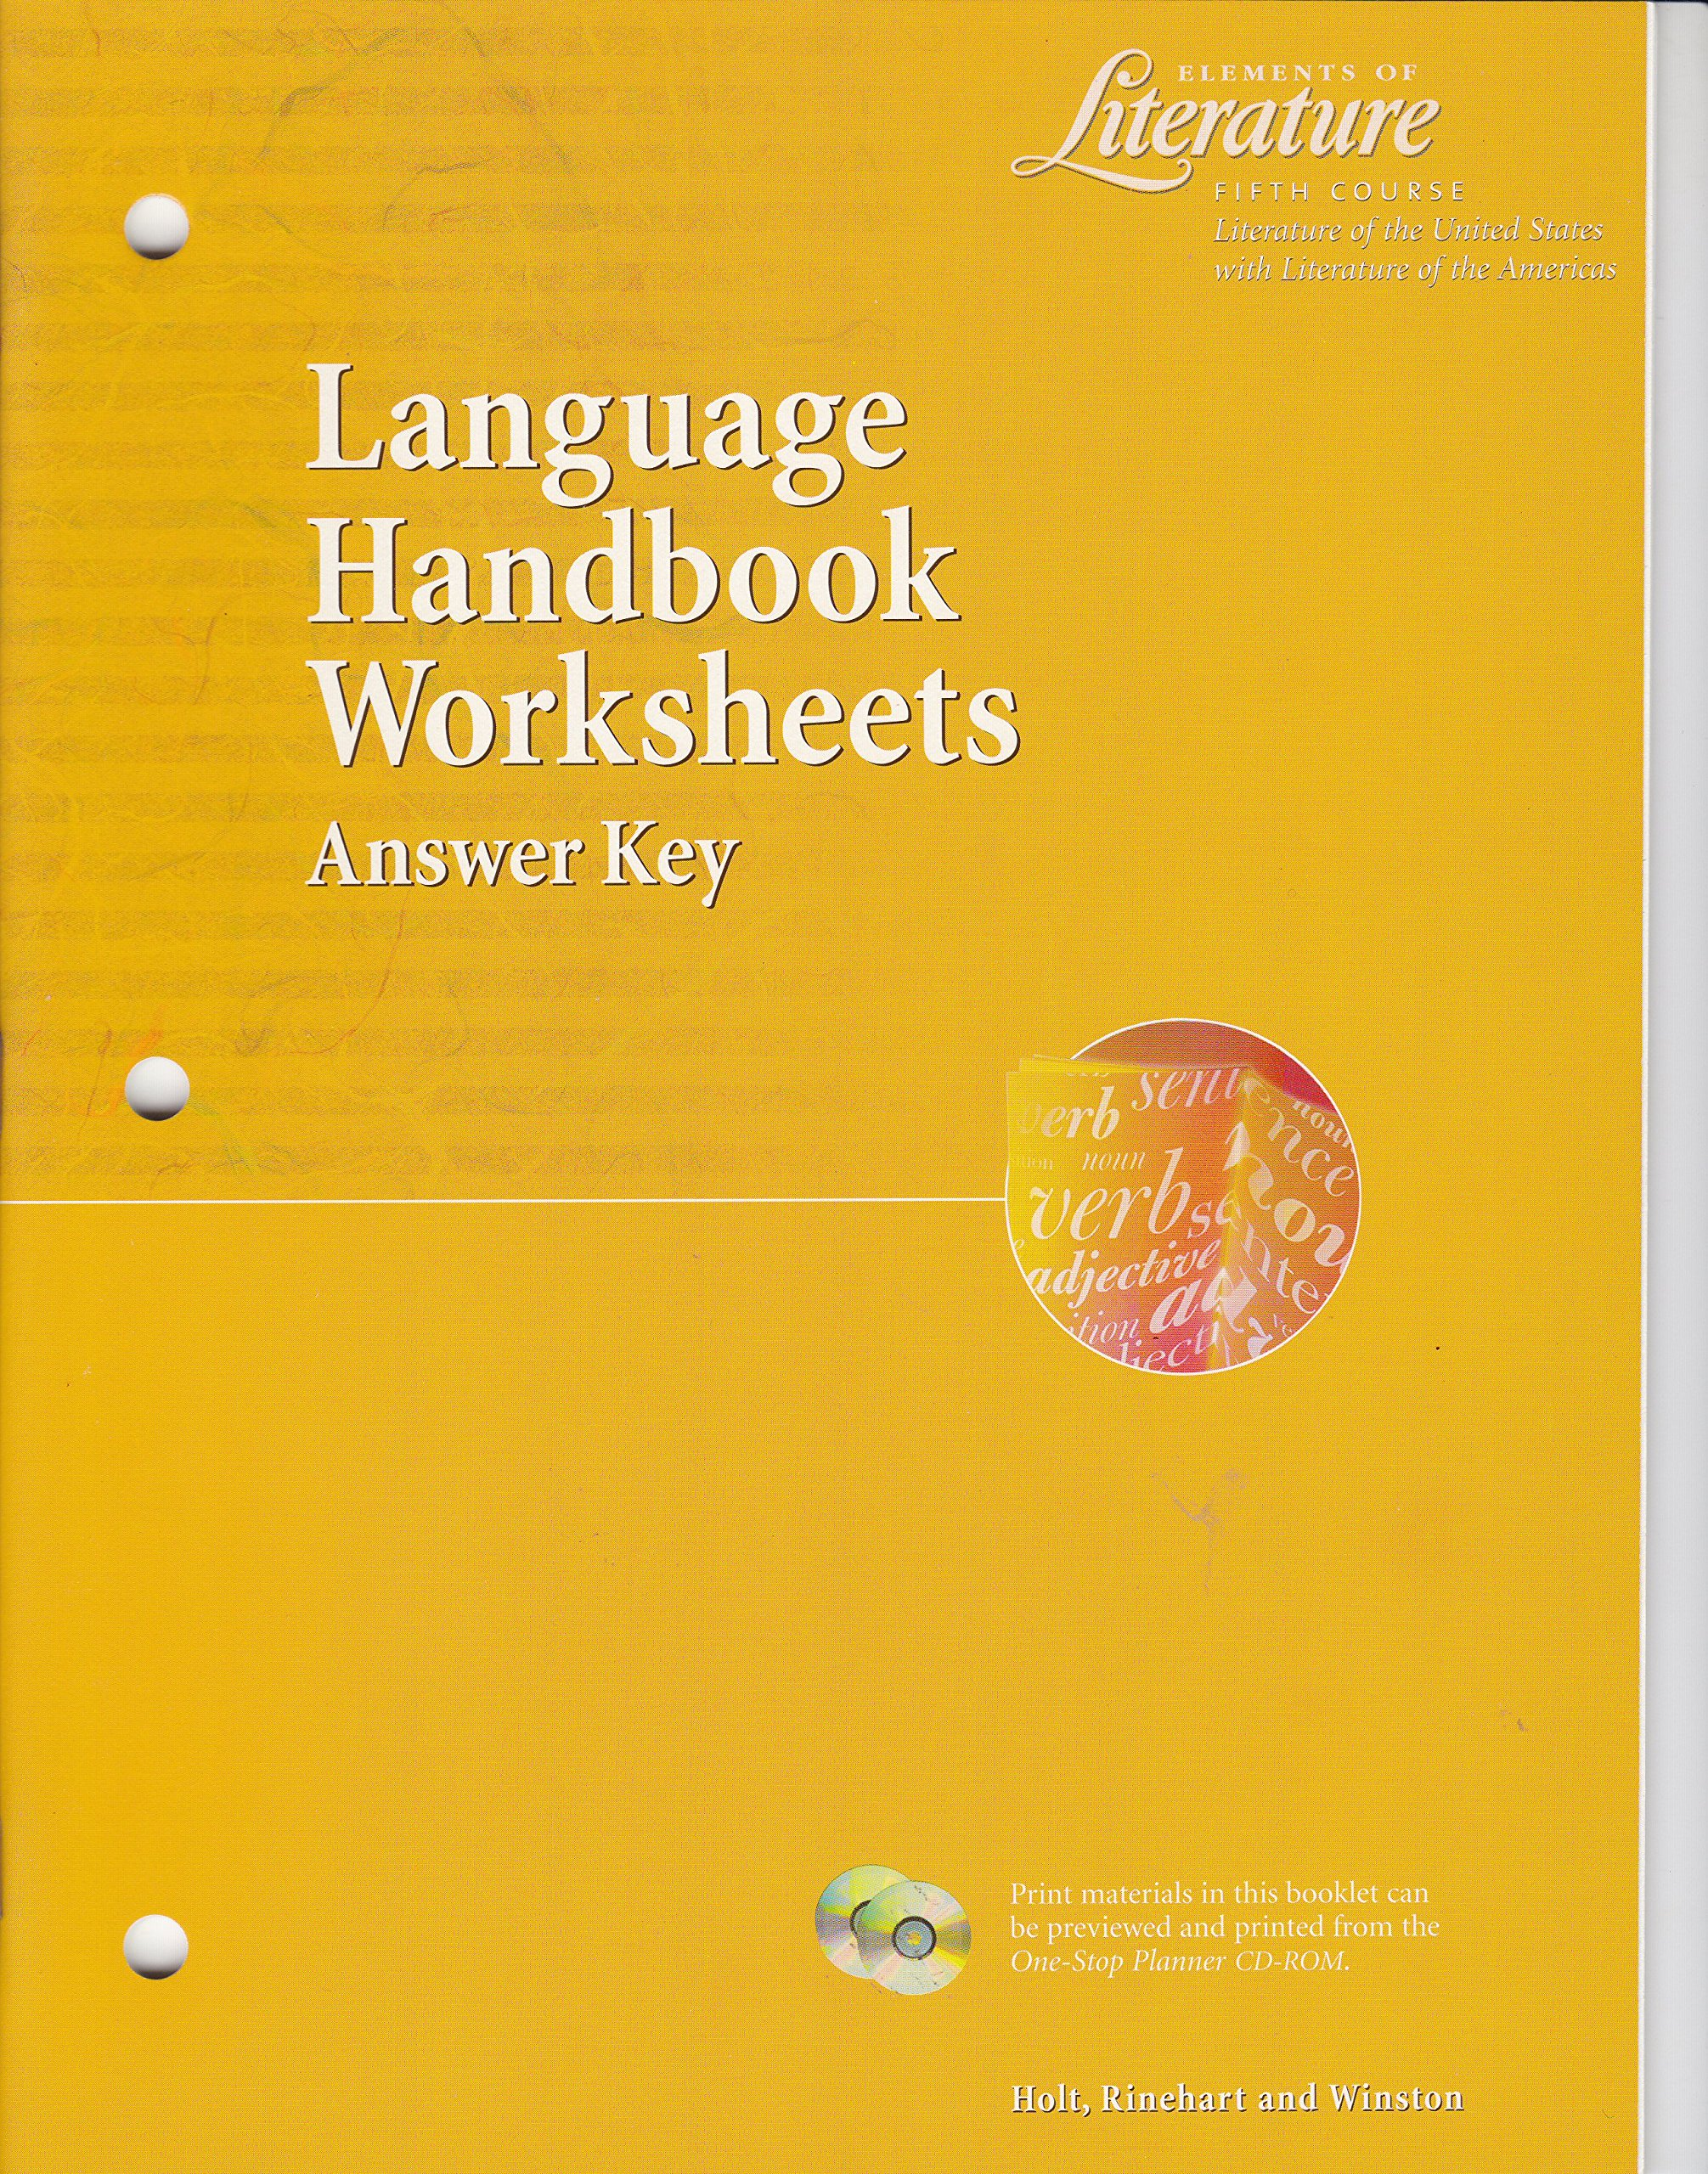 Worksheets Language Handbook Worksheets Answer Key Online elements of literature fifth course grade 11 language handbook worksheets answer key winston holt rinehart 9780030524189 amaz